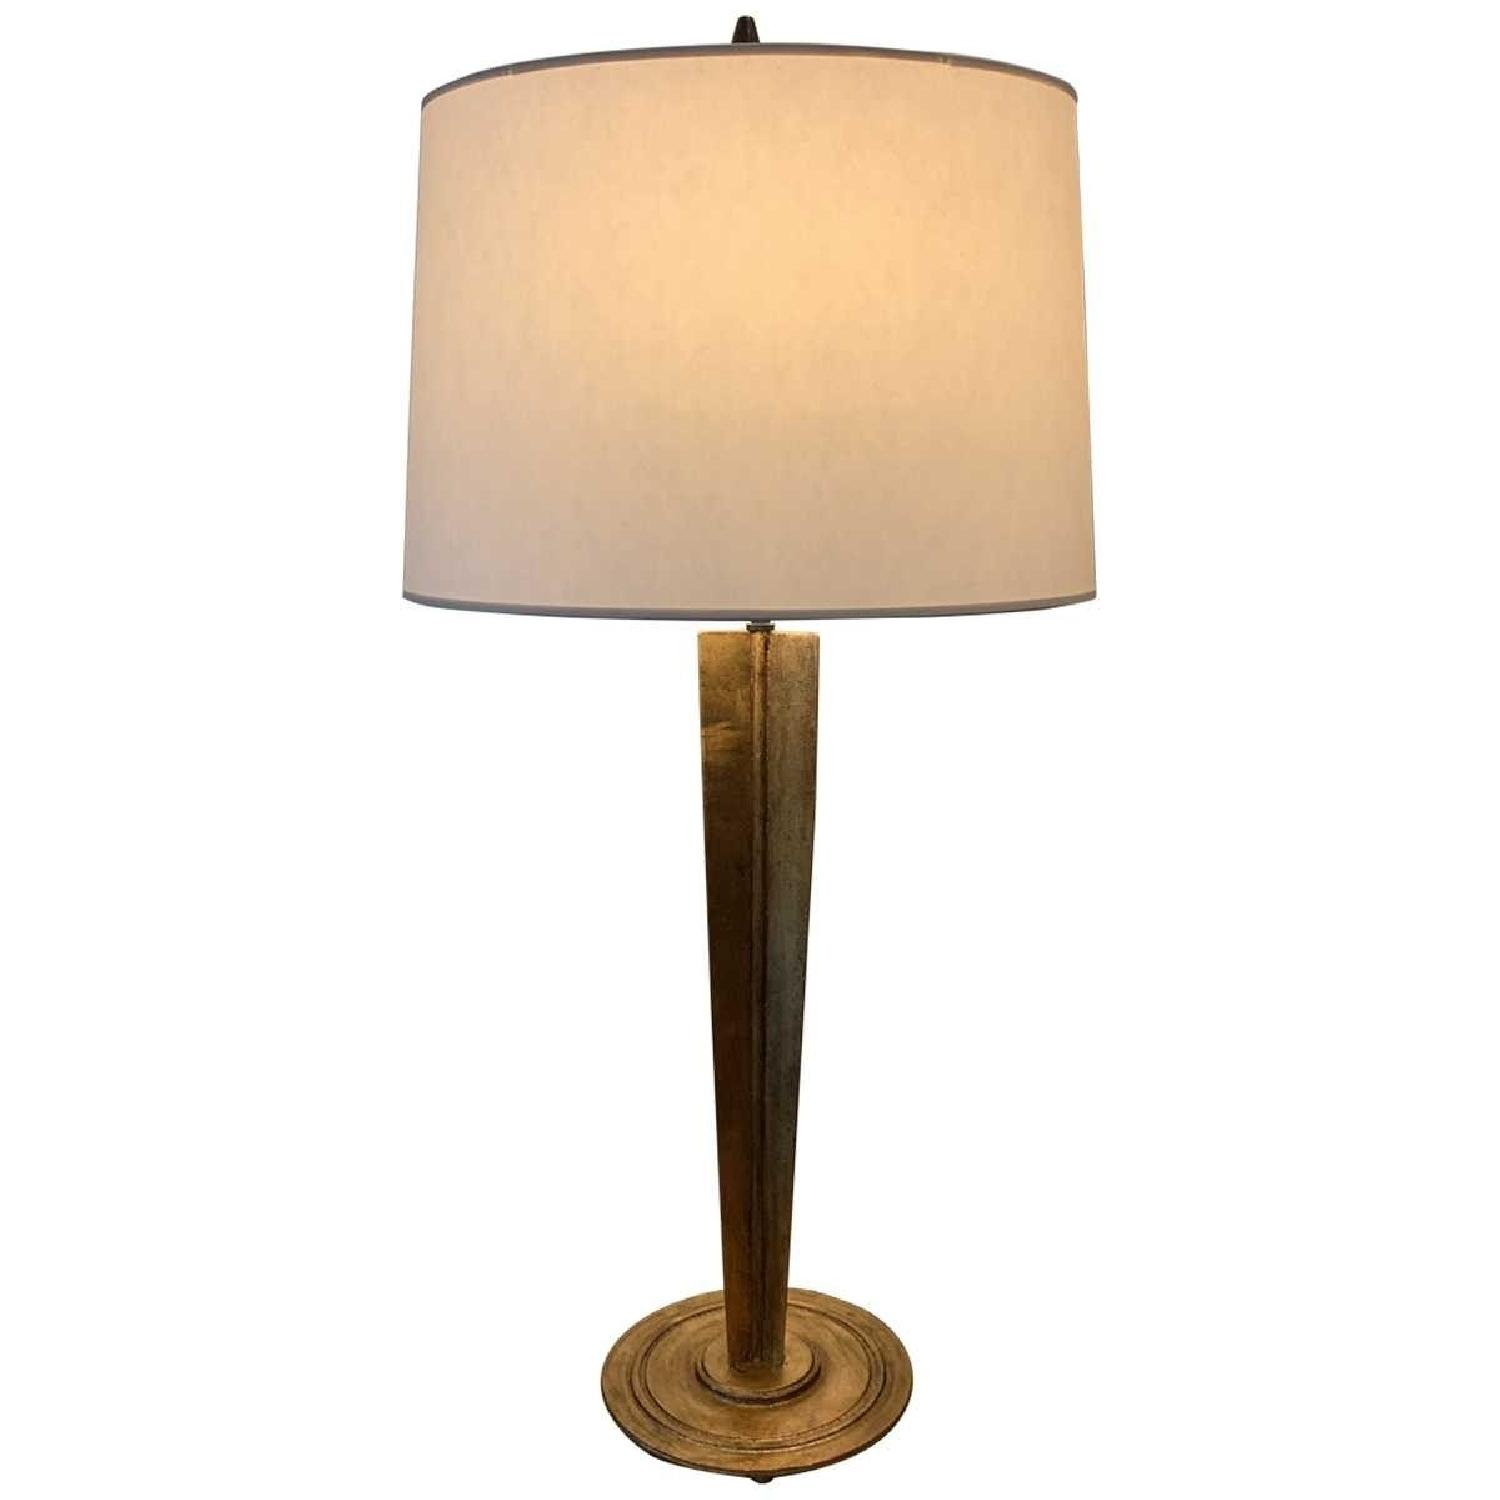 Contemporary Gilded Table Lamp